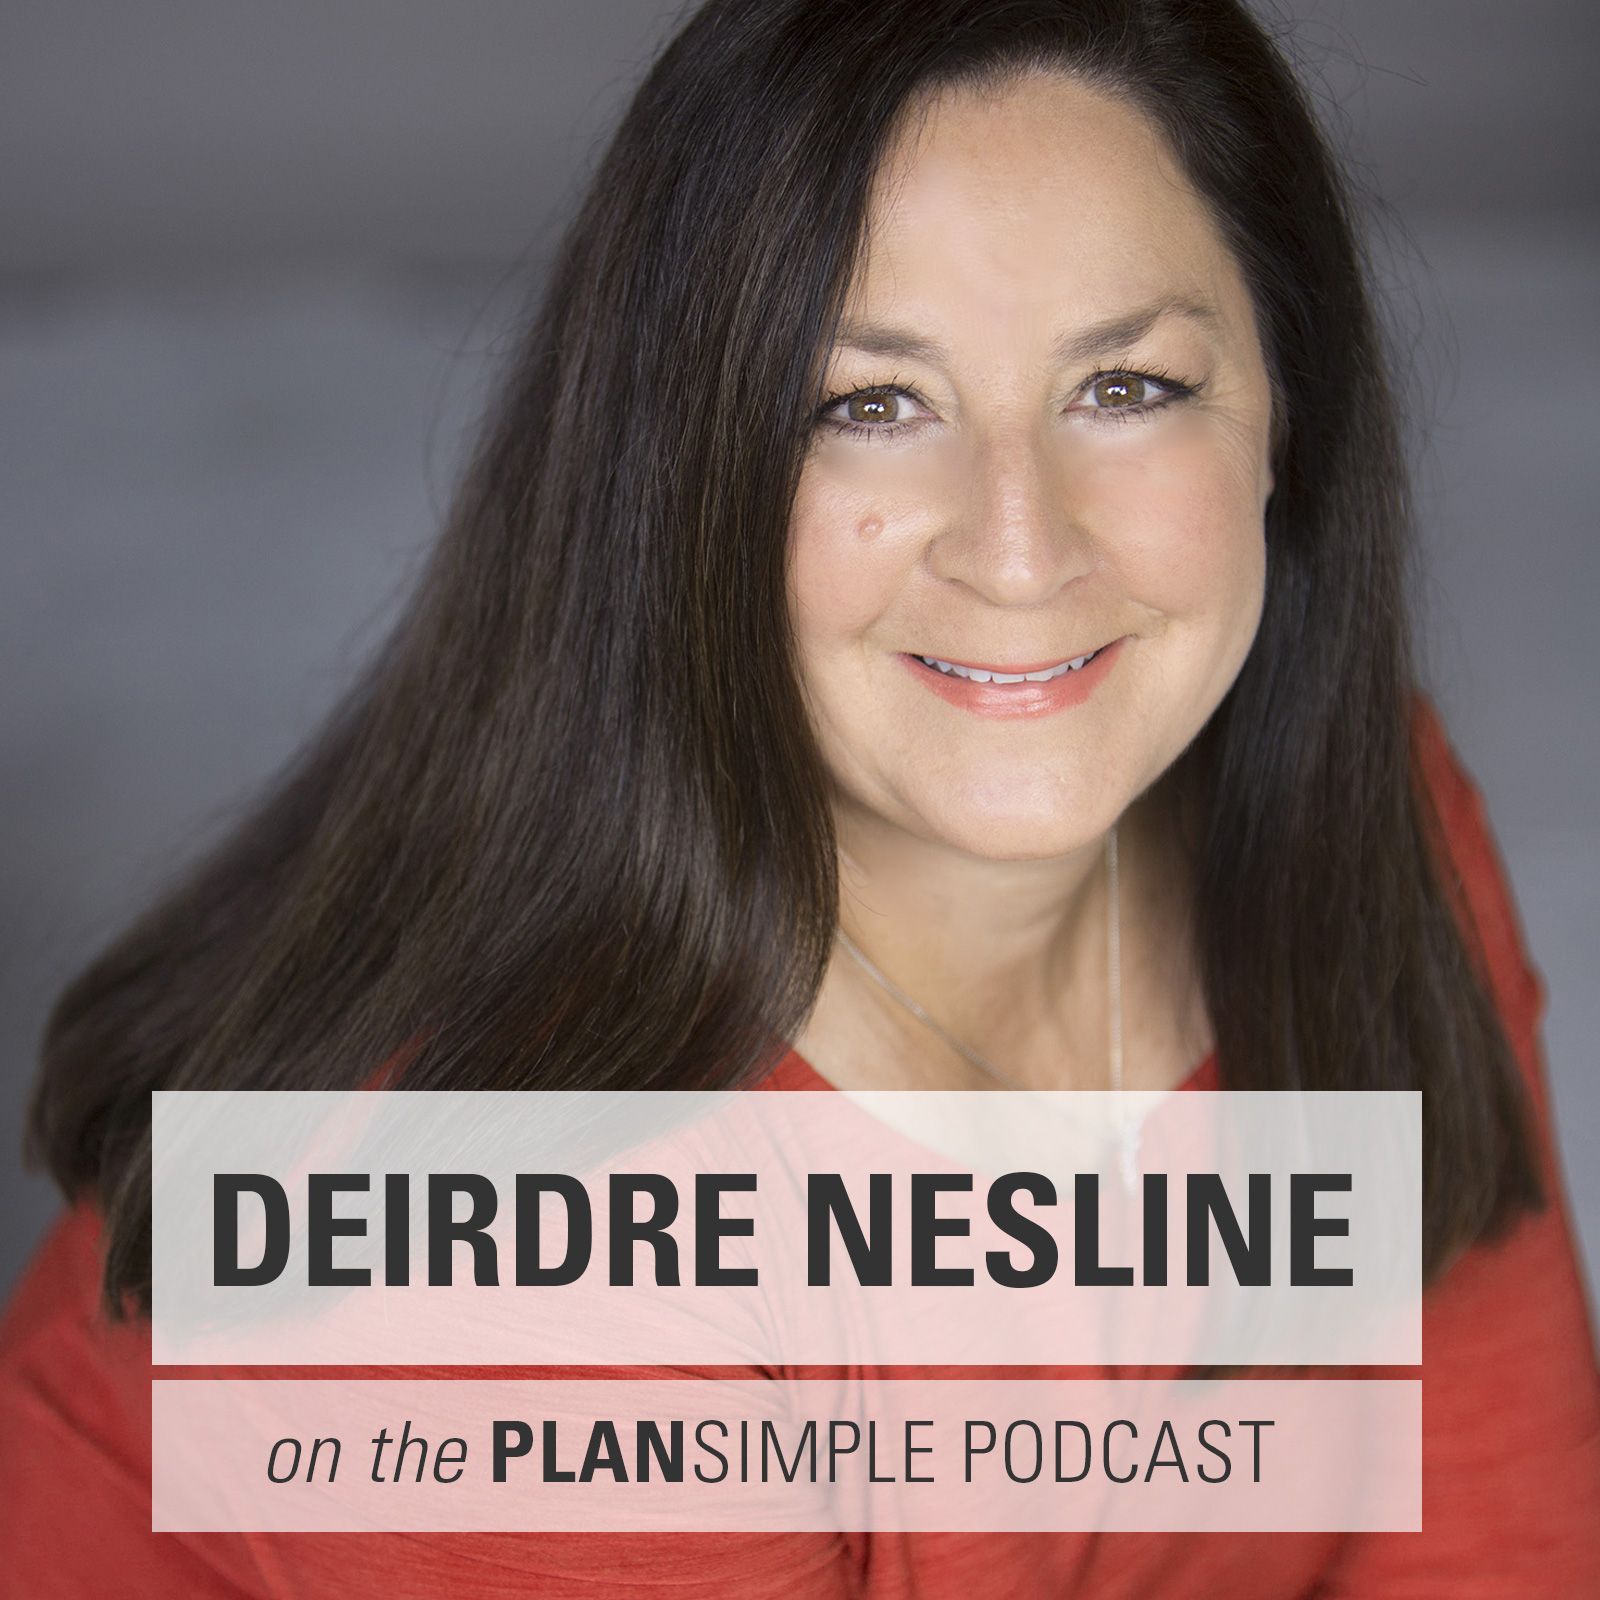 The Decluttered Life With Deirdre Nesline